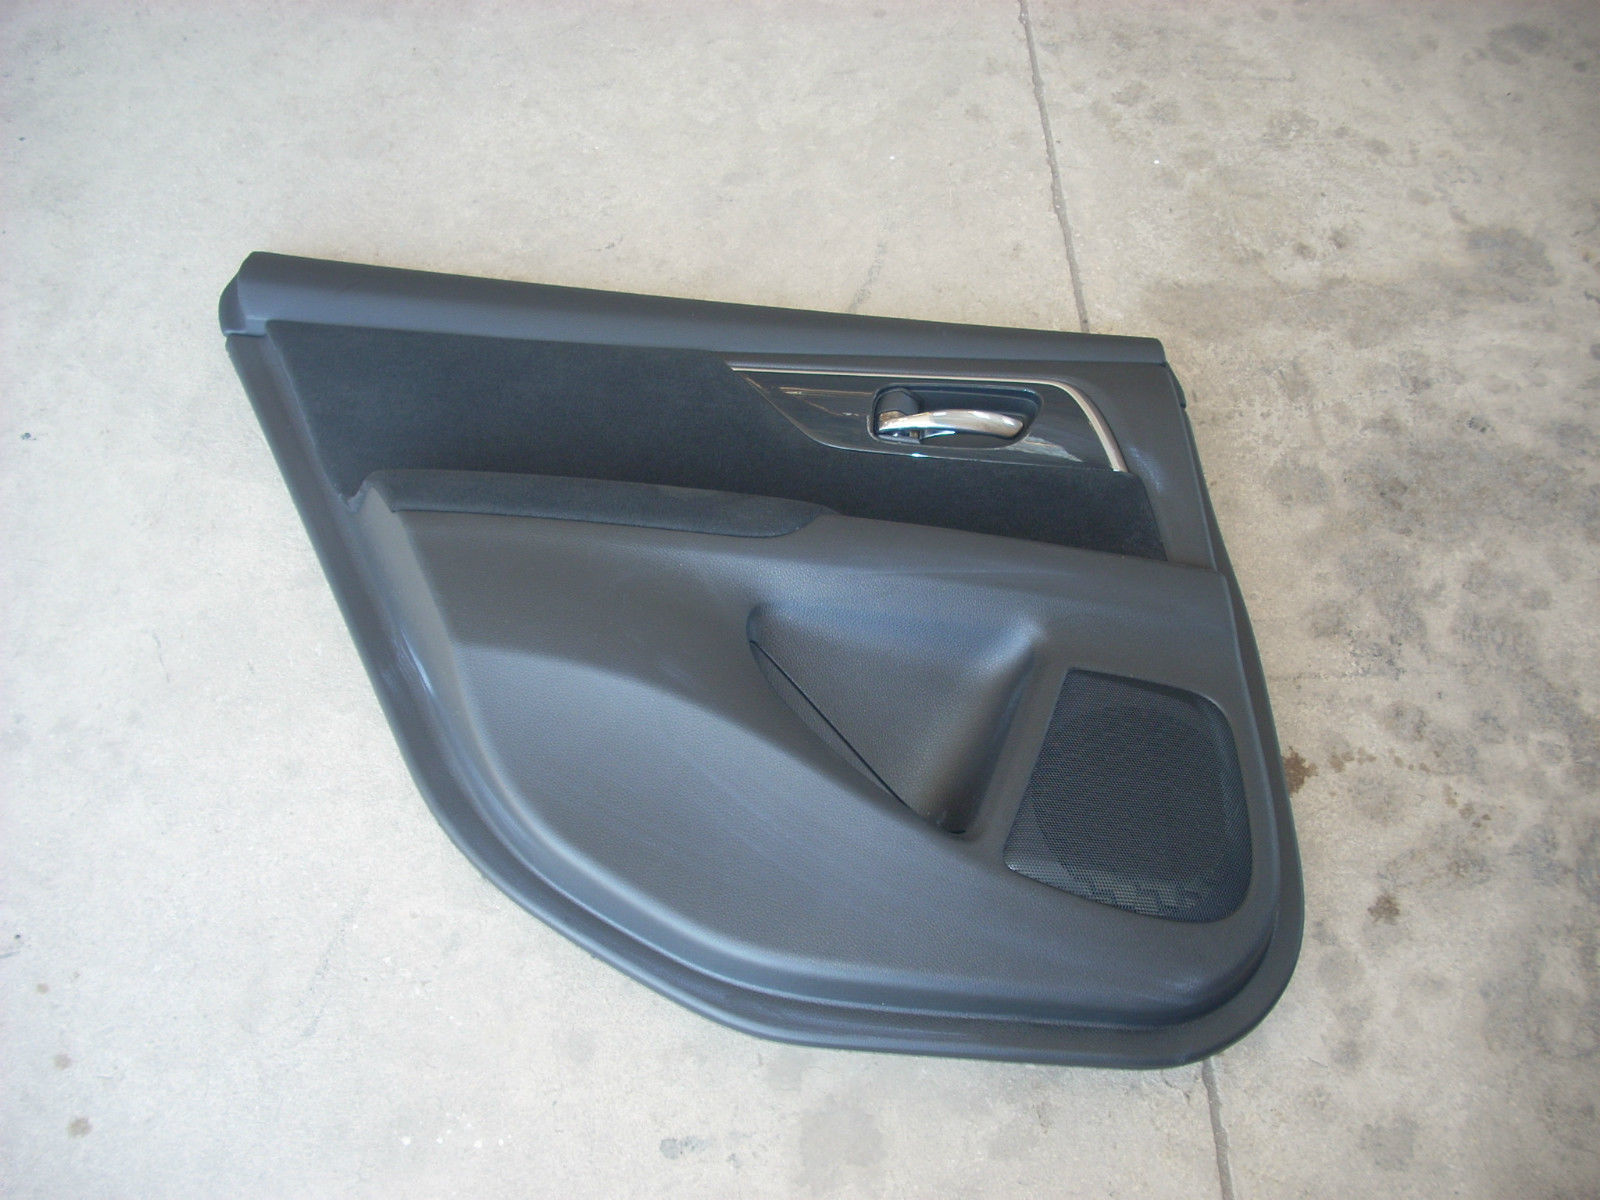 2013 NISSAN ALTIMA LEFT REAR DOOR TRIM PANEL